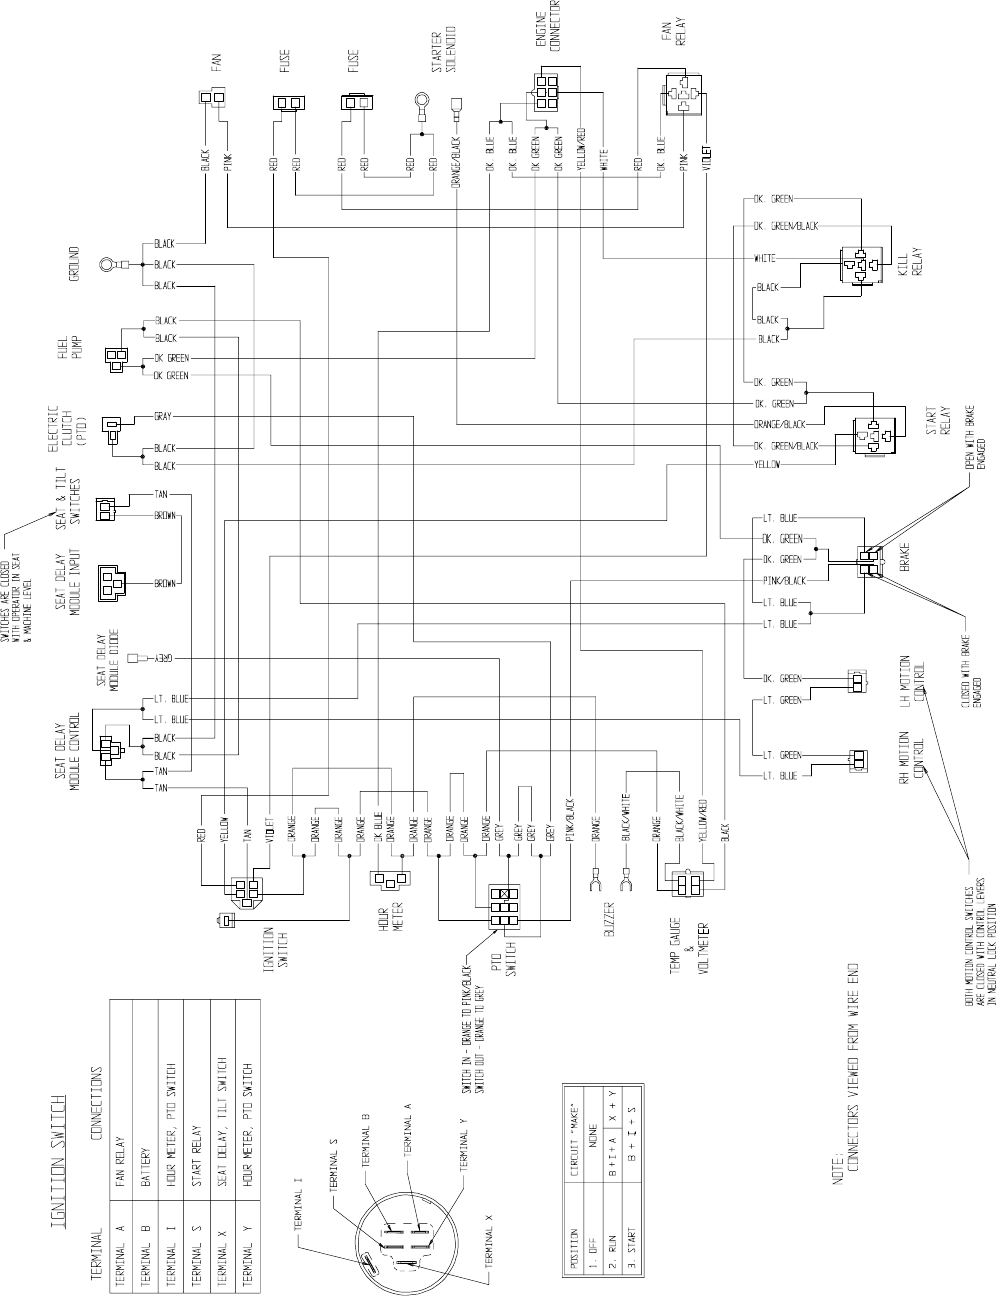 fe0094d5 b49c 4e15 9446 11a96067f628 bg35 hd wallpapers wiring diagram for exmark lazer z 3dhdhddesignf tk Muncie PTO Diagram at gsmx.co